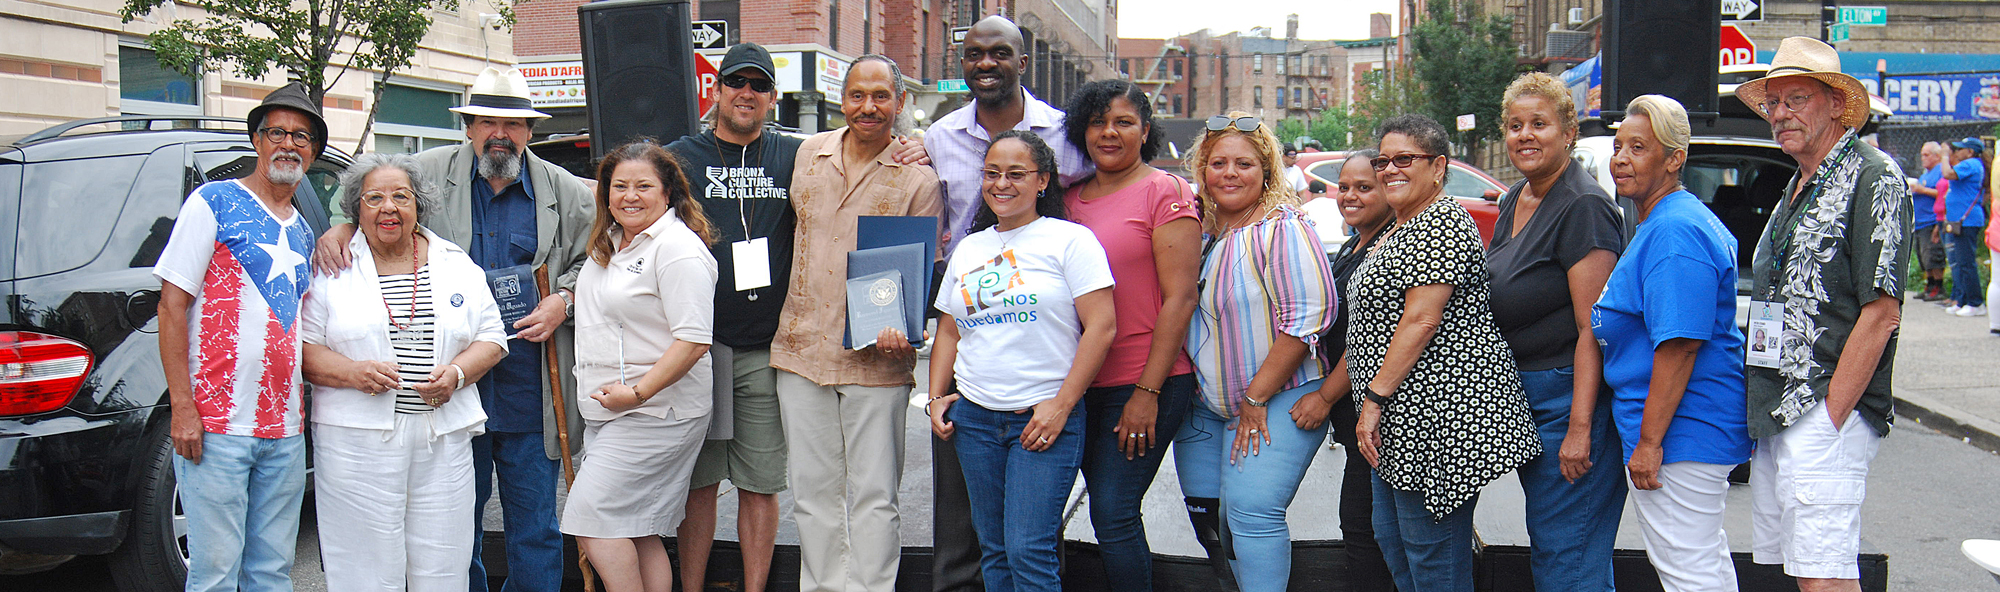 """We Are Melrose"" 2018 Street Fair. Recipients of the Harvesting Culture Awards are flanked by Nos Quedamos staff and NYS Assembly Michael Blake."